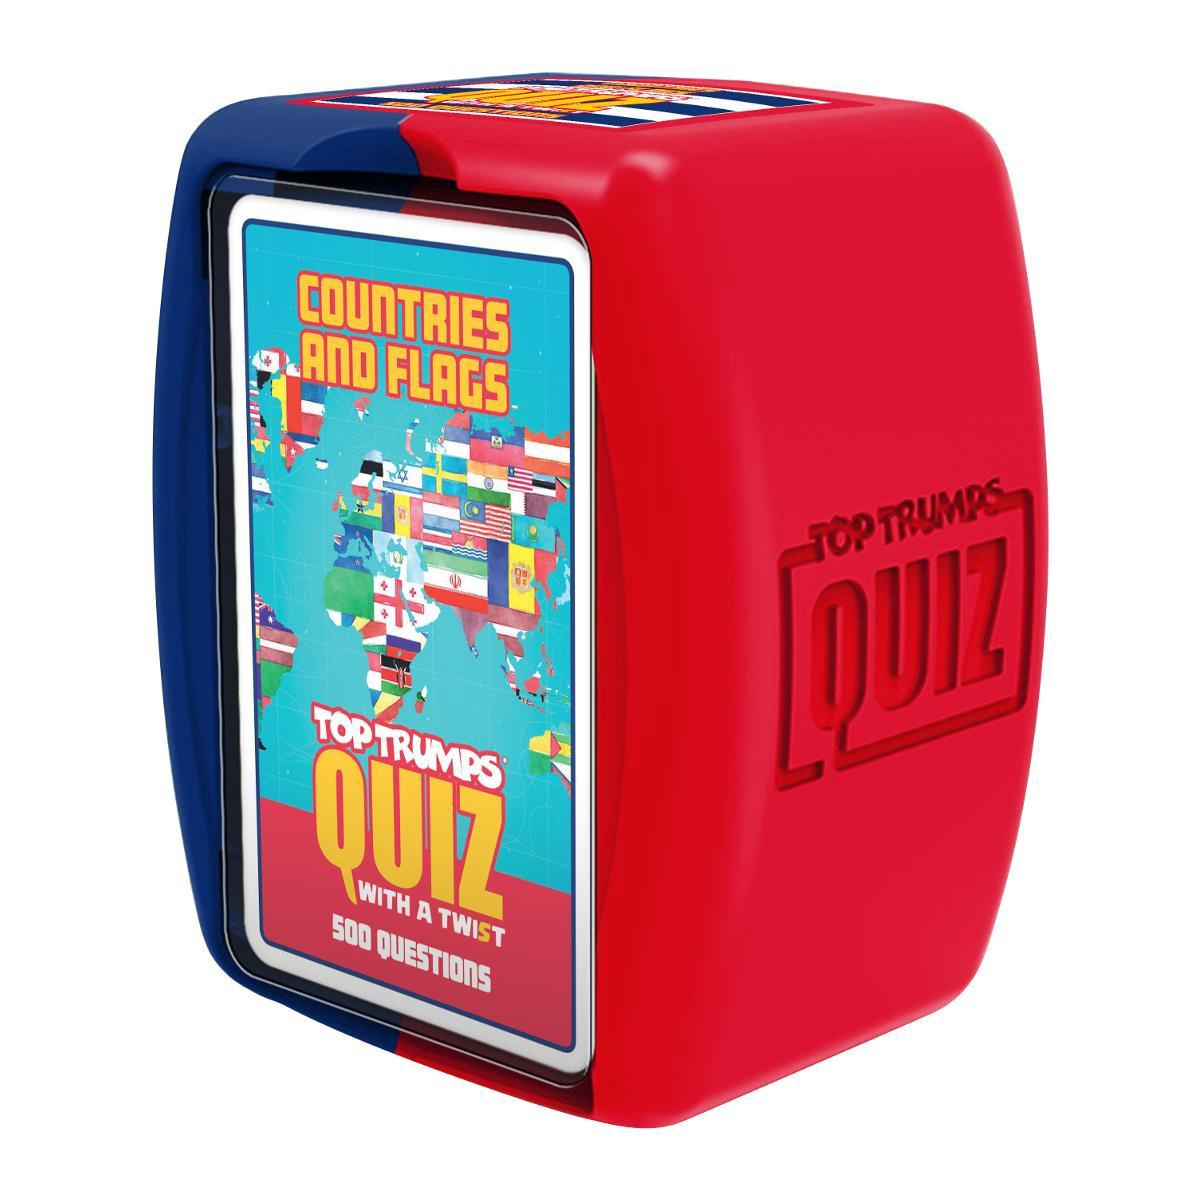 TOP TRUMPS QUIZ COUNTRIES AND FLAGS QUIZ